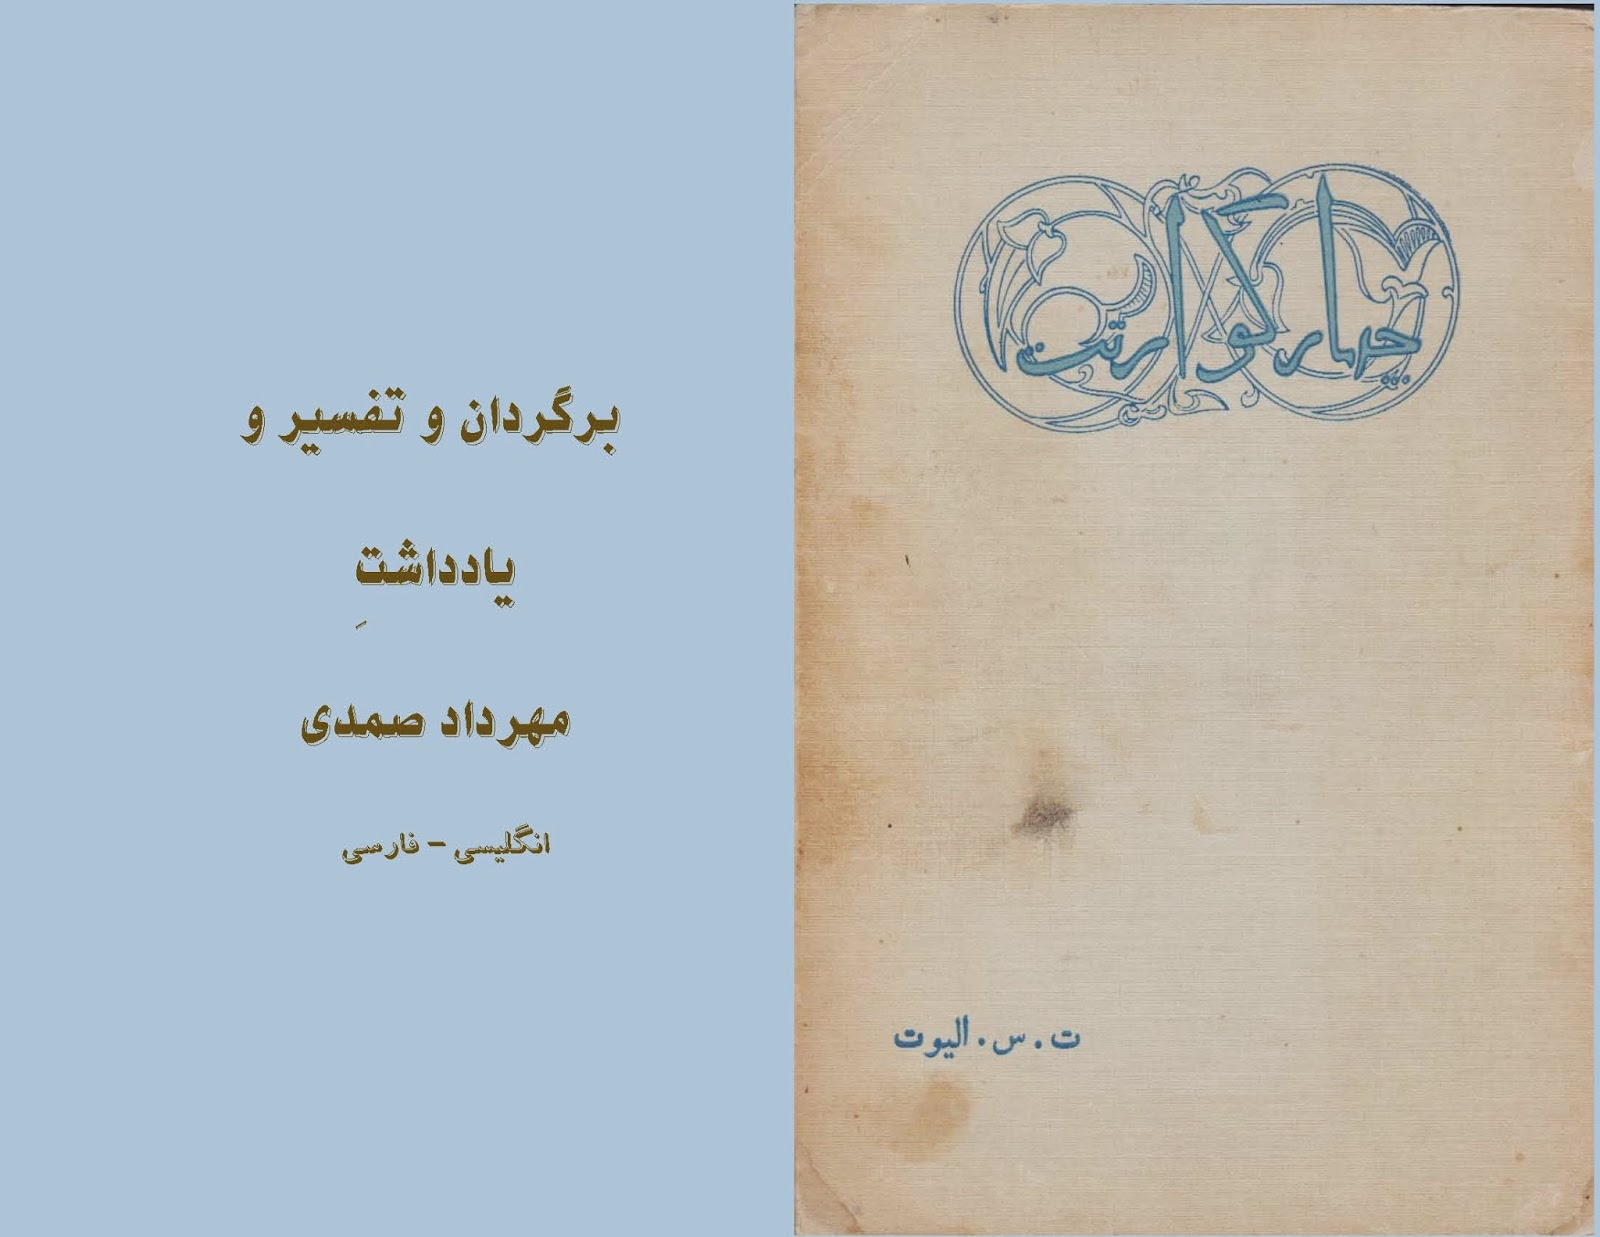 http://amirsj.files.wordpress.com/2014/03/4-quartets-mehrdad-samad-fin.pdf